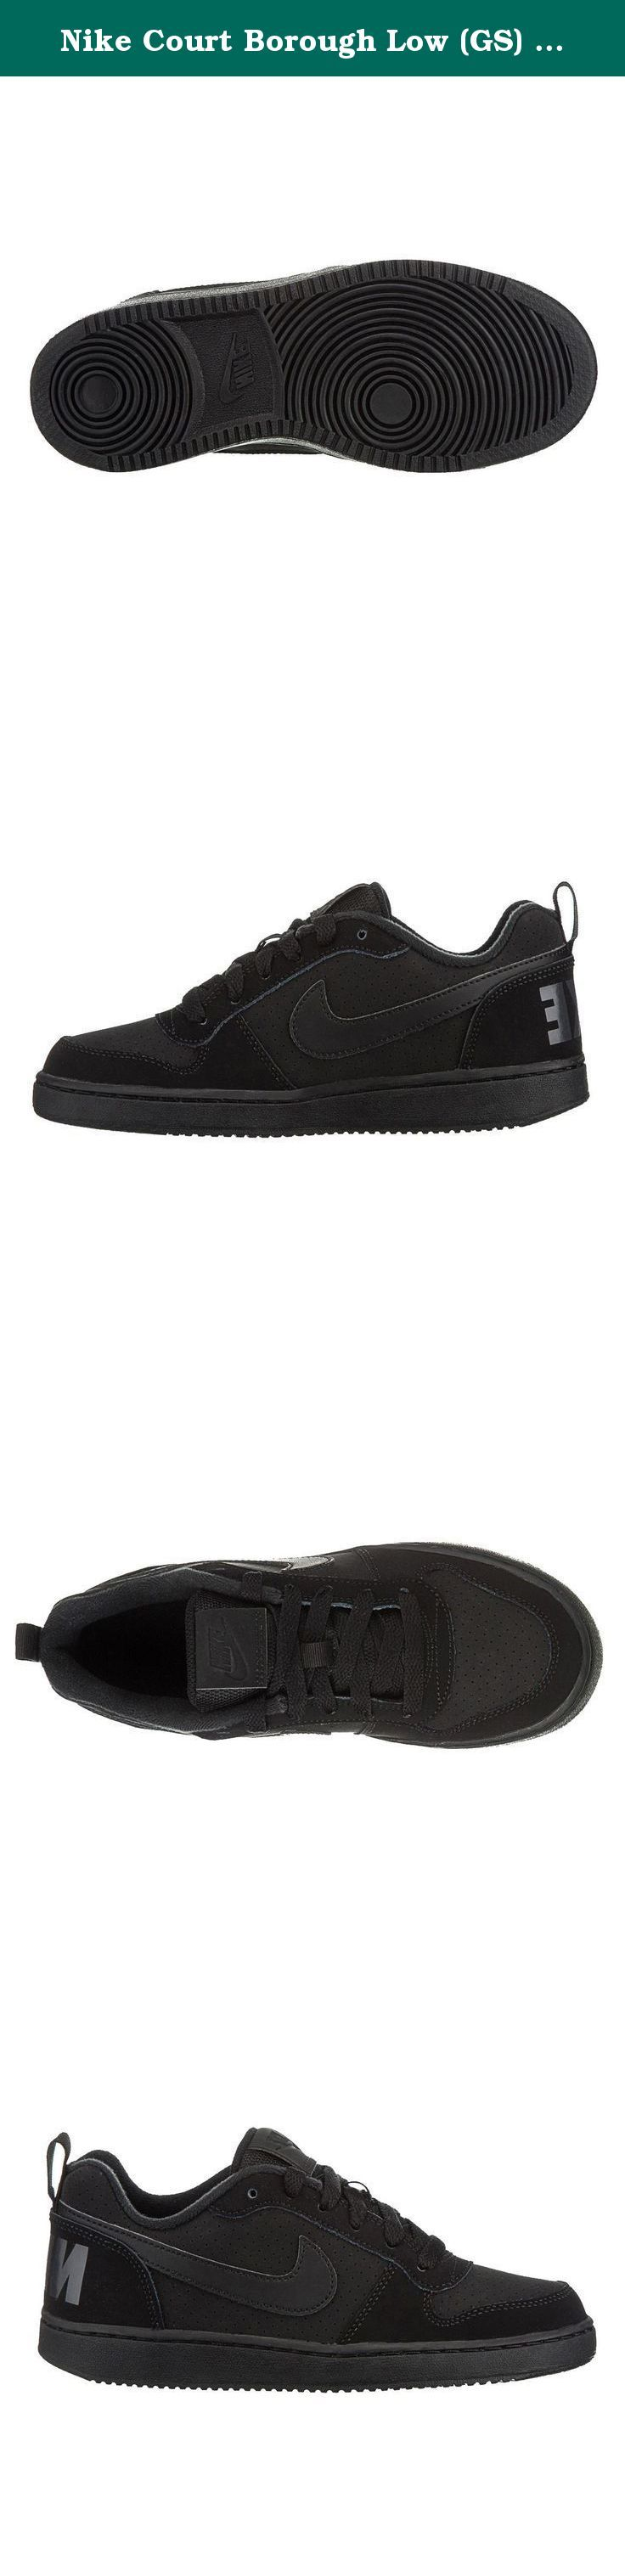 Nike Court Borough Low (GS) Grade School Shoes Black/Black-Black 839985-001 (5.5). Nike Court Borough Low (GS) Boys shoes, feature basketball-inspired design which is engineered to give you a maximum support and to feel light when worn. Low ankle structure offers a relaxed fit and will provide comfort. Dish base structure creates stability and remains flexible. Solid rubber outsole yields outstanding grip and durability.